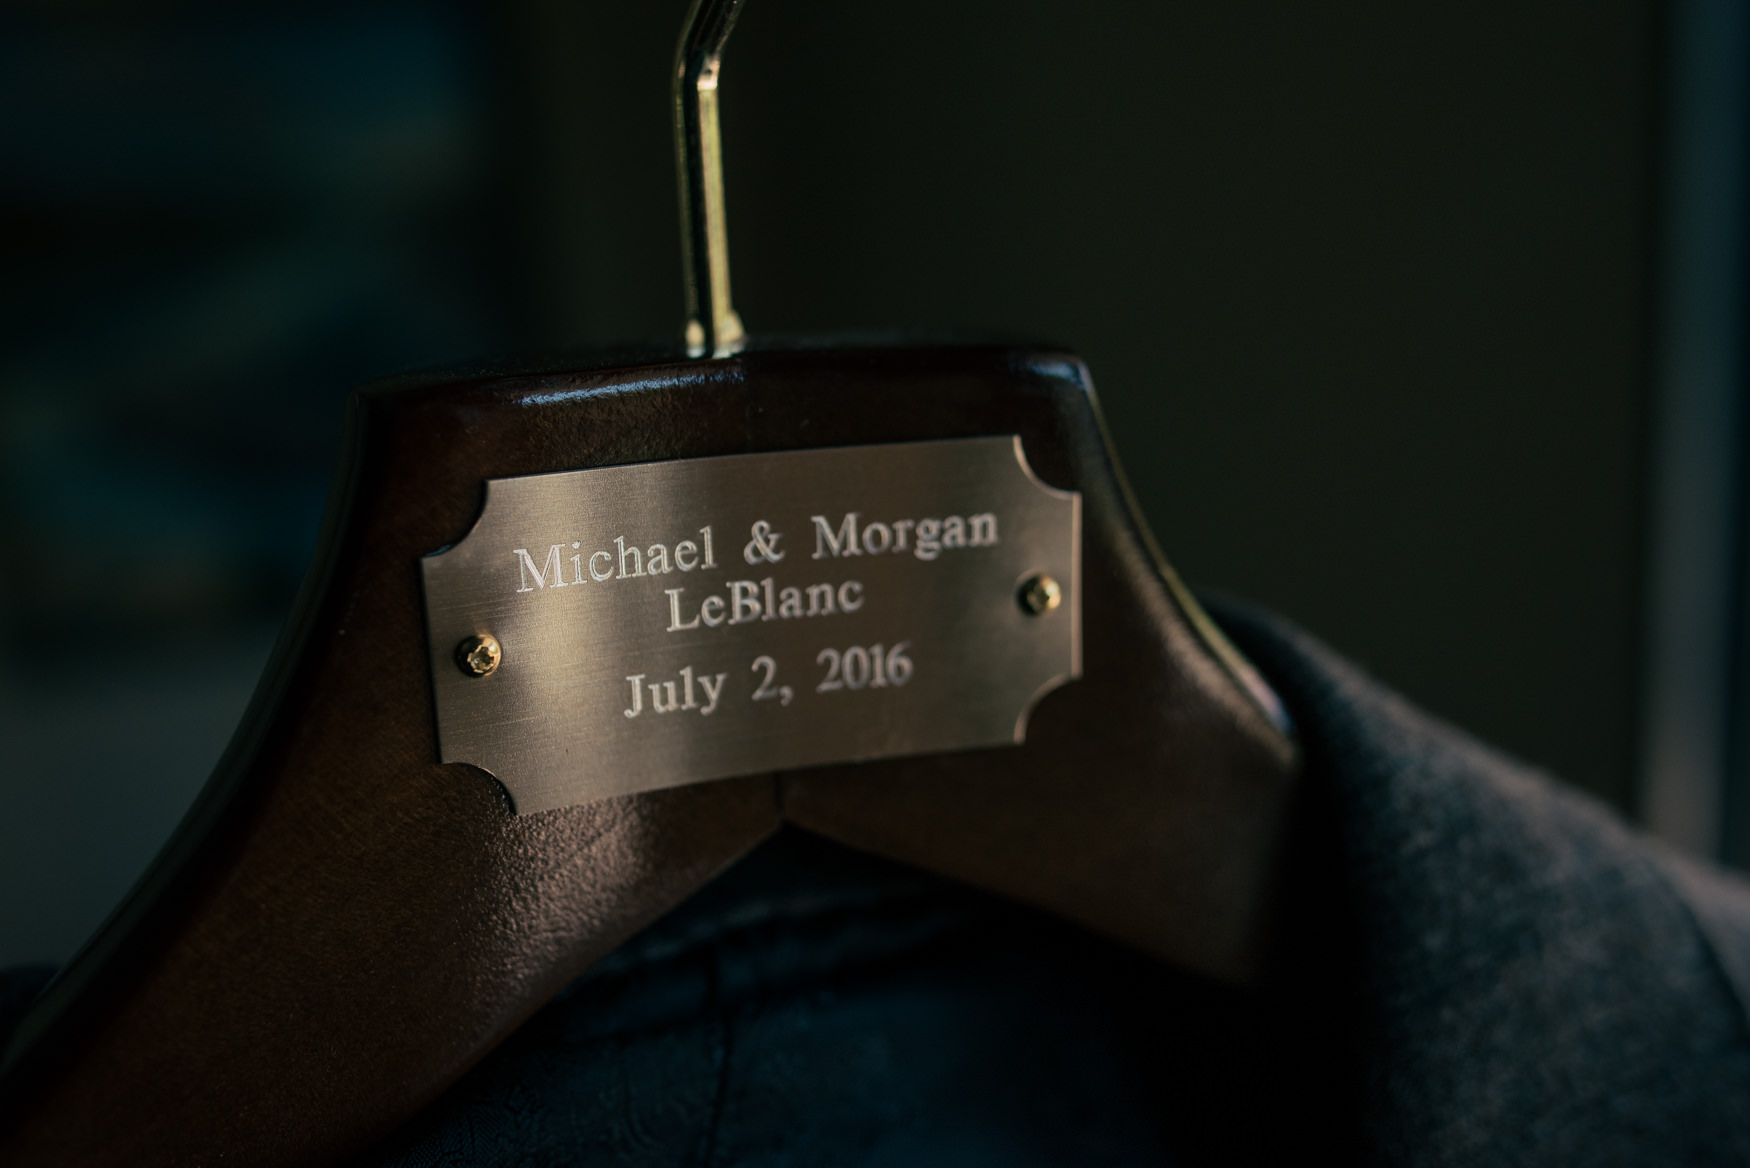 rsw-michael_morgan-wedding-007